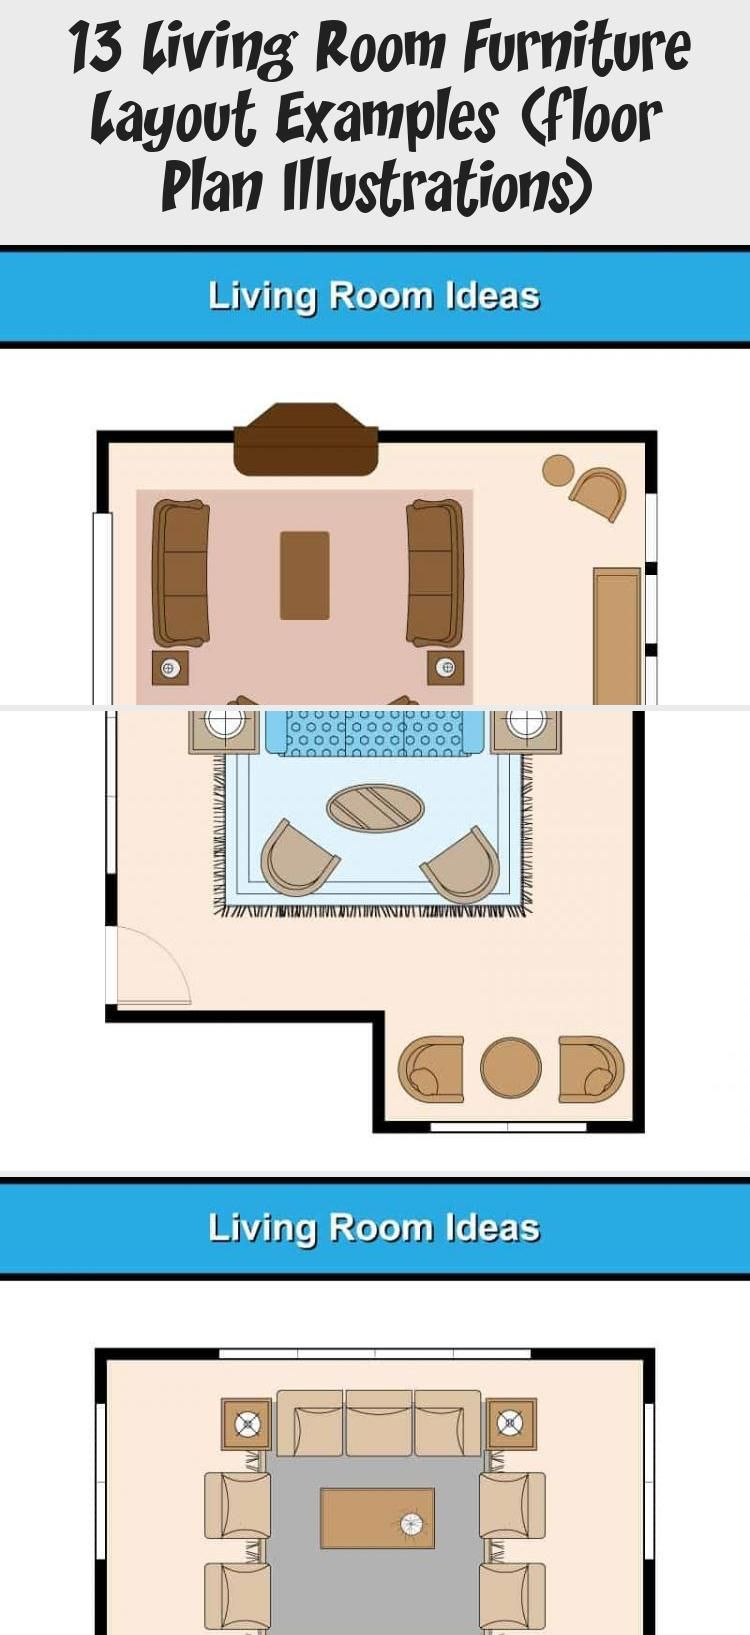 13 Living Room Furniture Layout Examples Floor Plan Illustrations Information Decor In 2020 Living Room Floor Plans Living Room Furniture Layout Furniture Layout